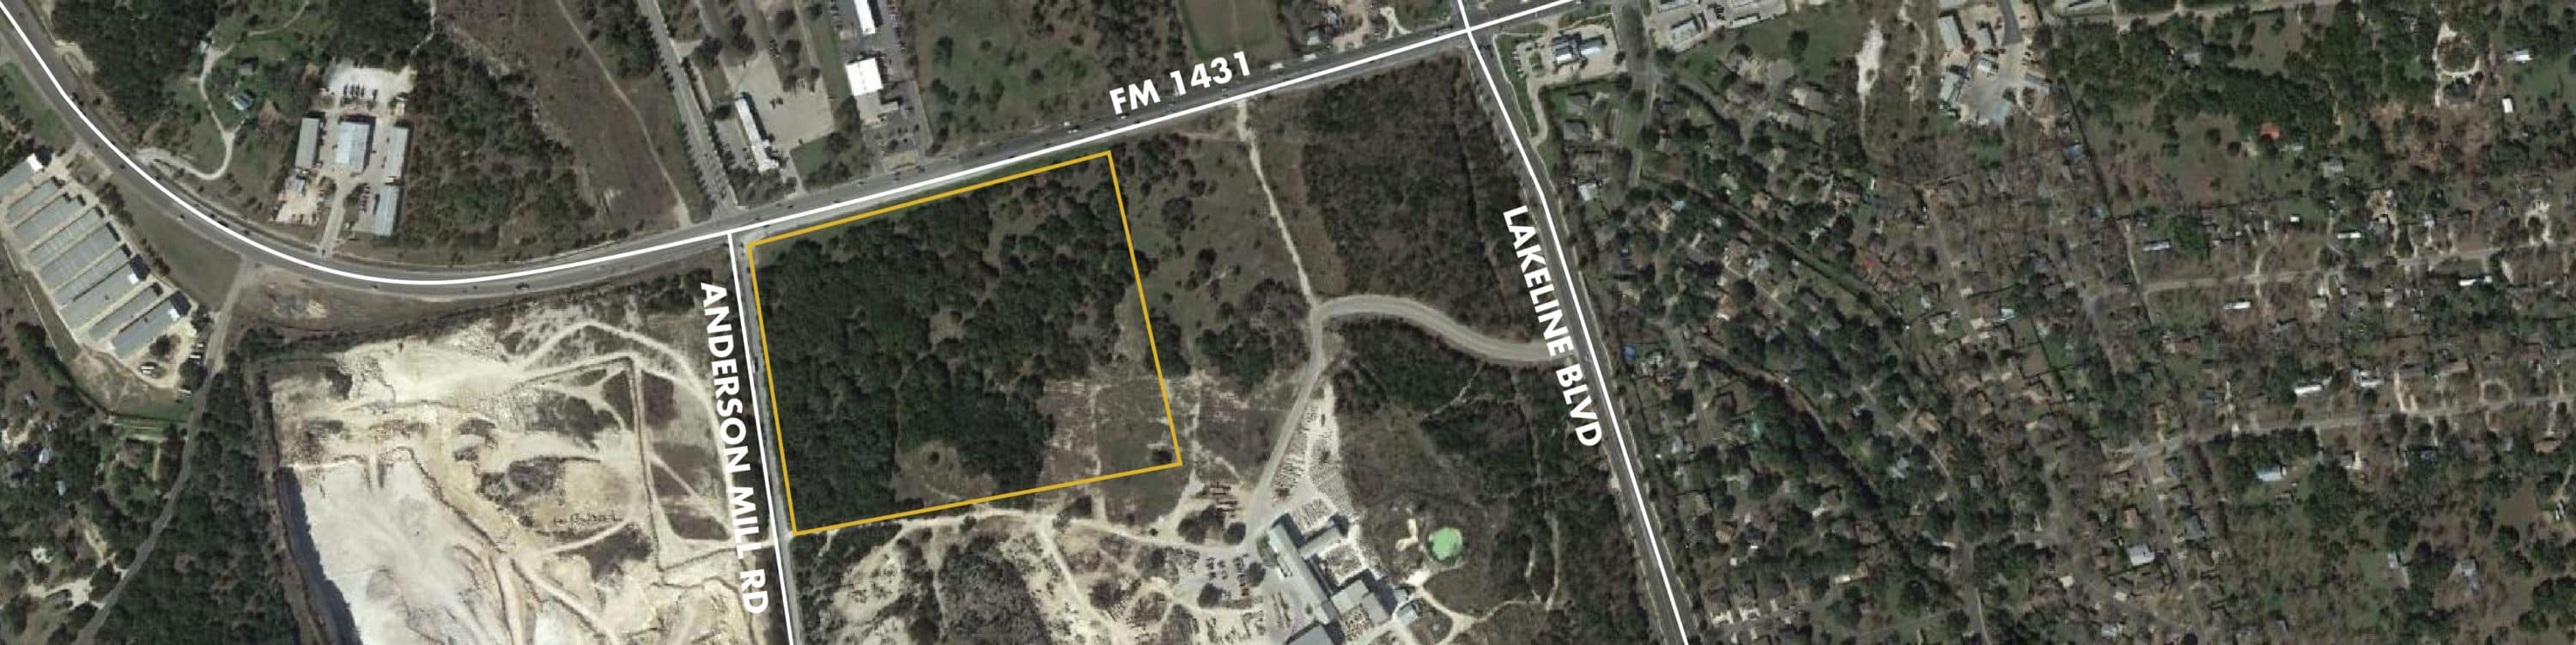 FM 1431 & Anderson Mill | Land for Sale in Cedar Park, Texas